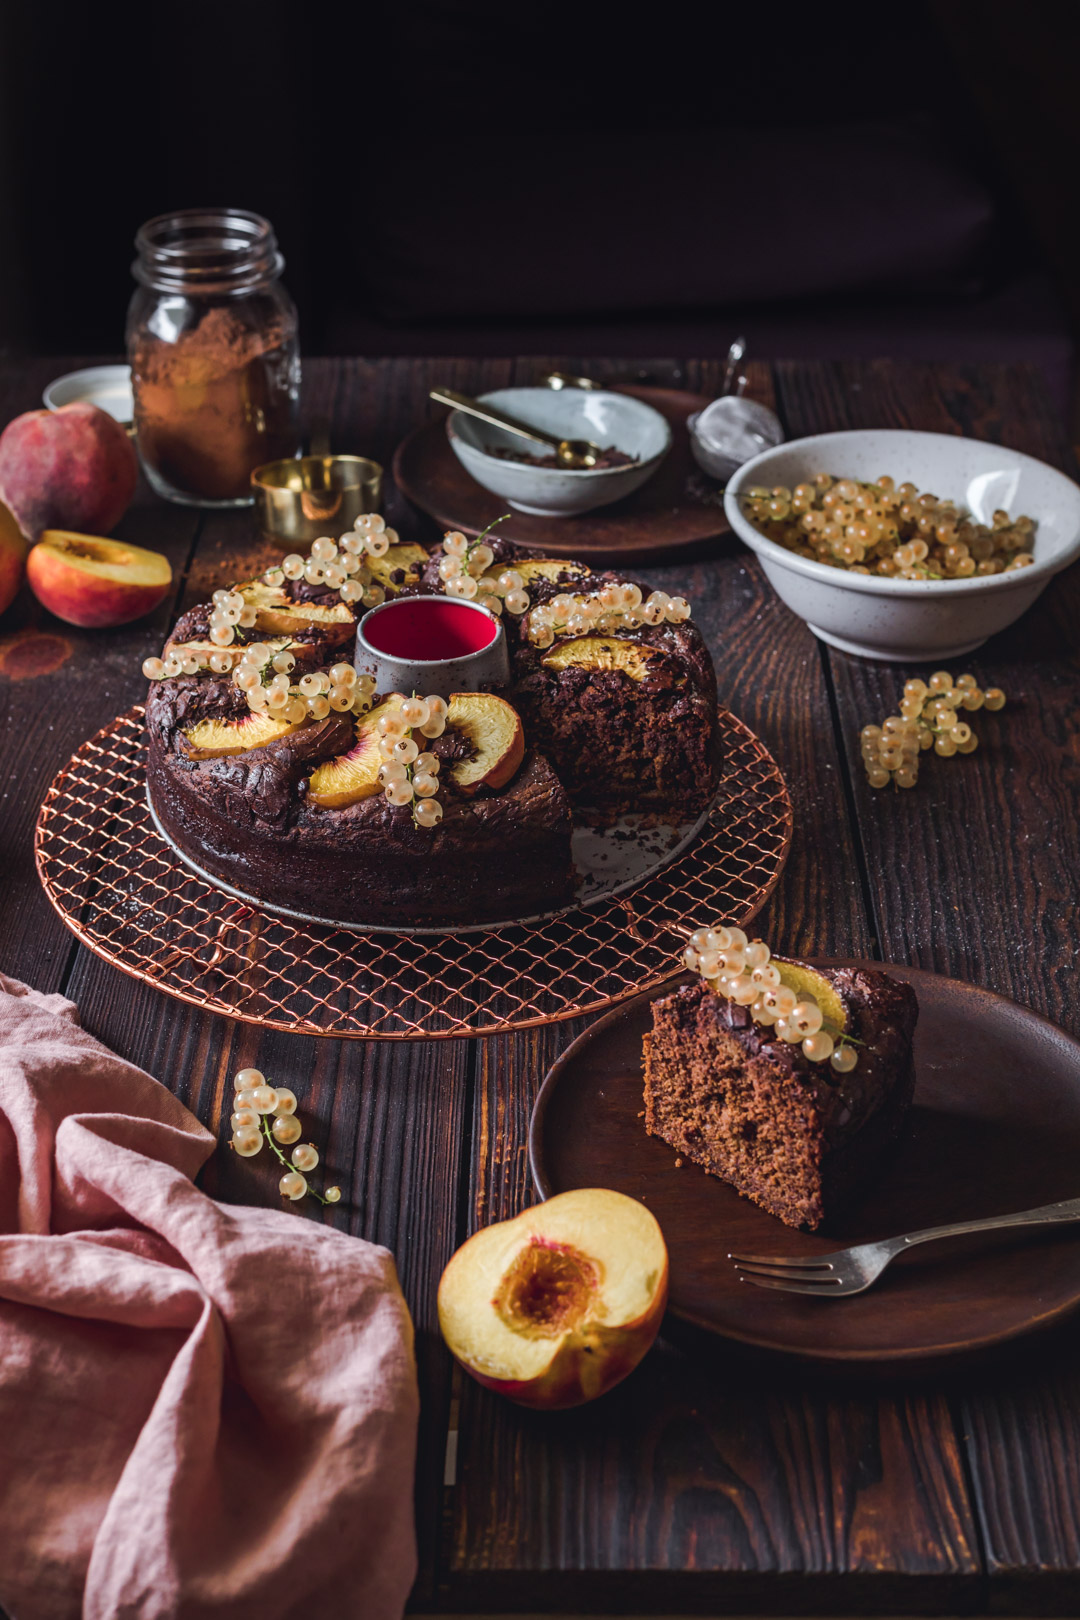 Vegan Chocolate Cake with Peaches